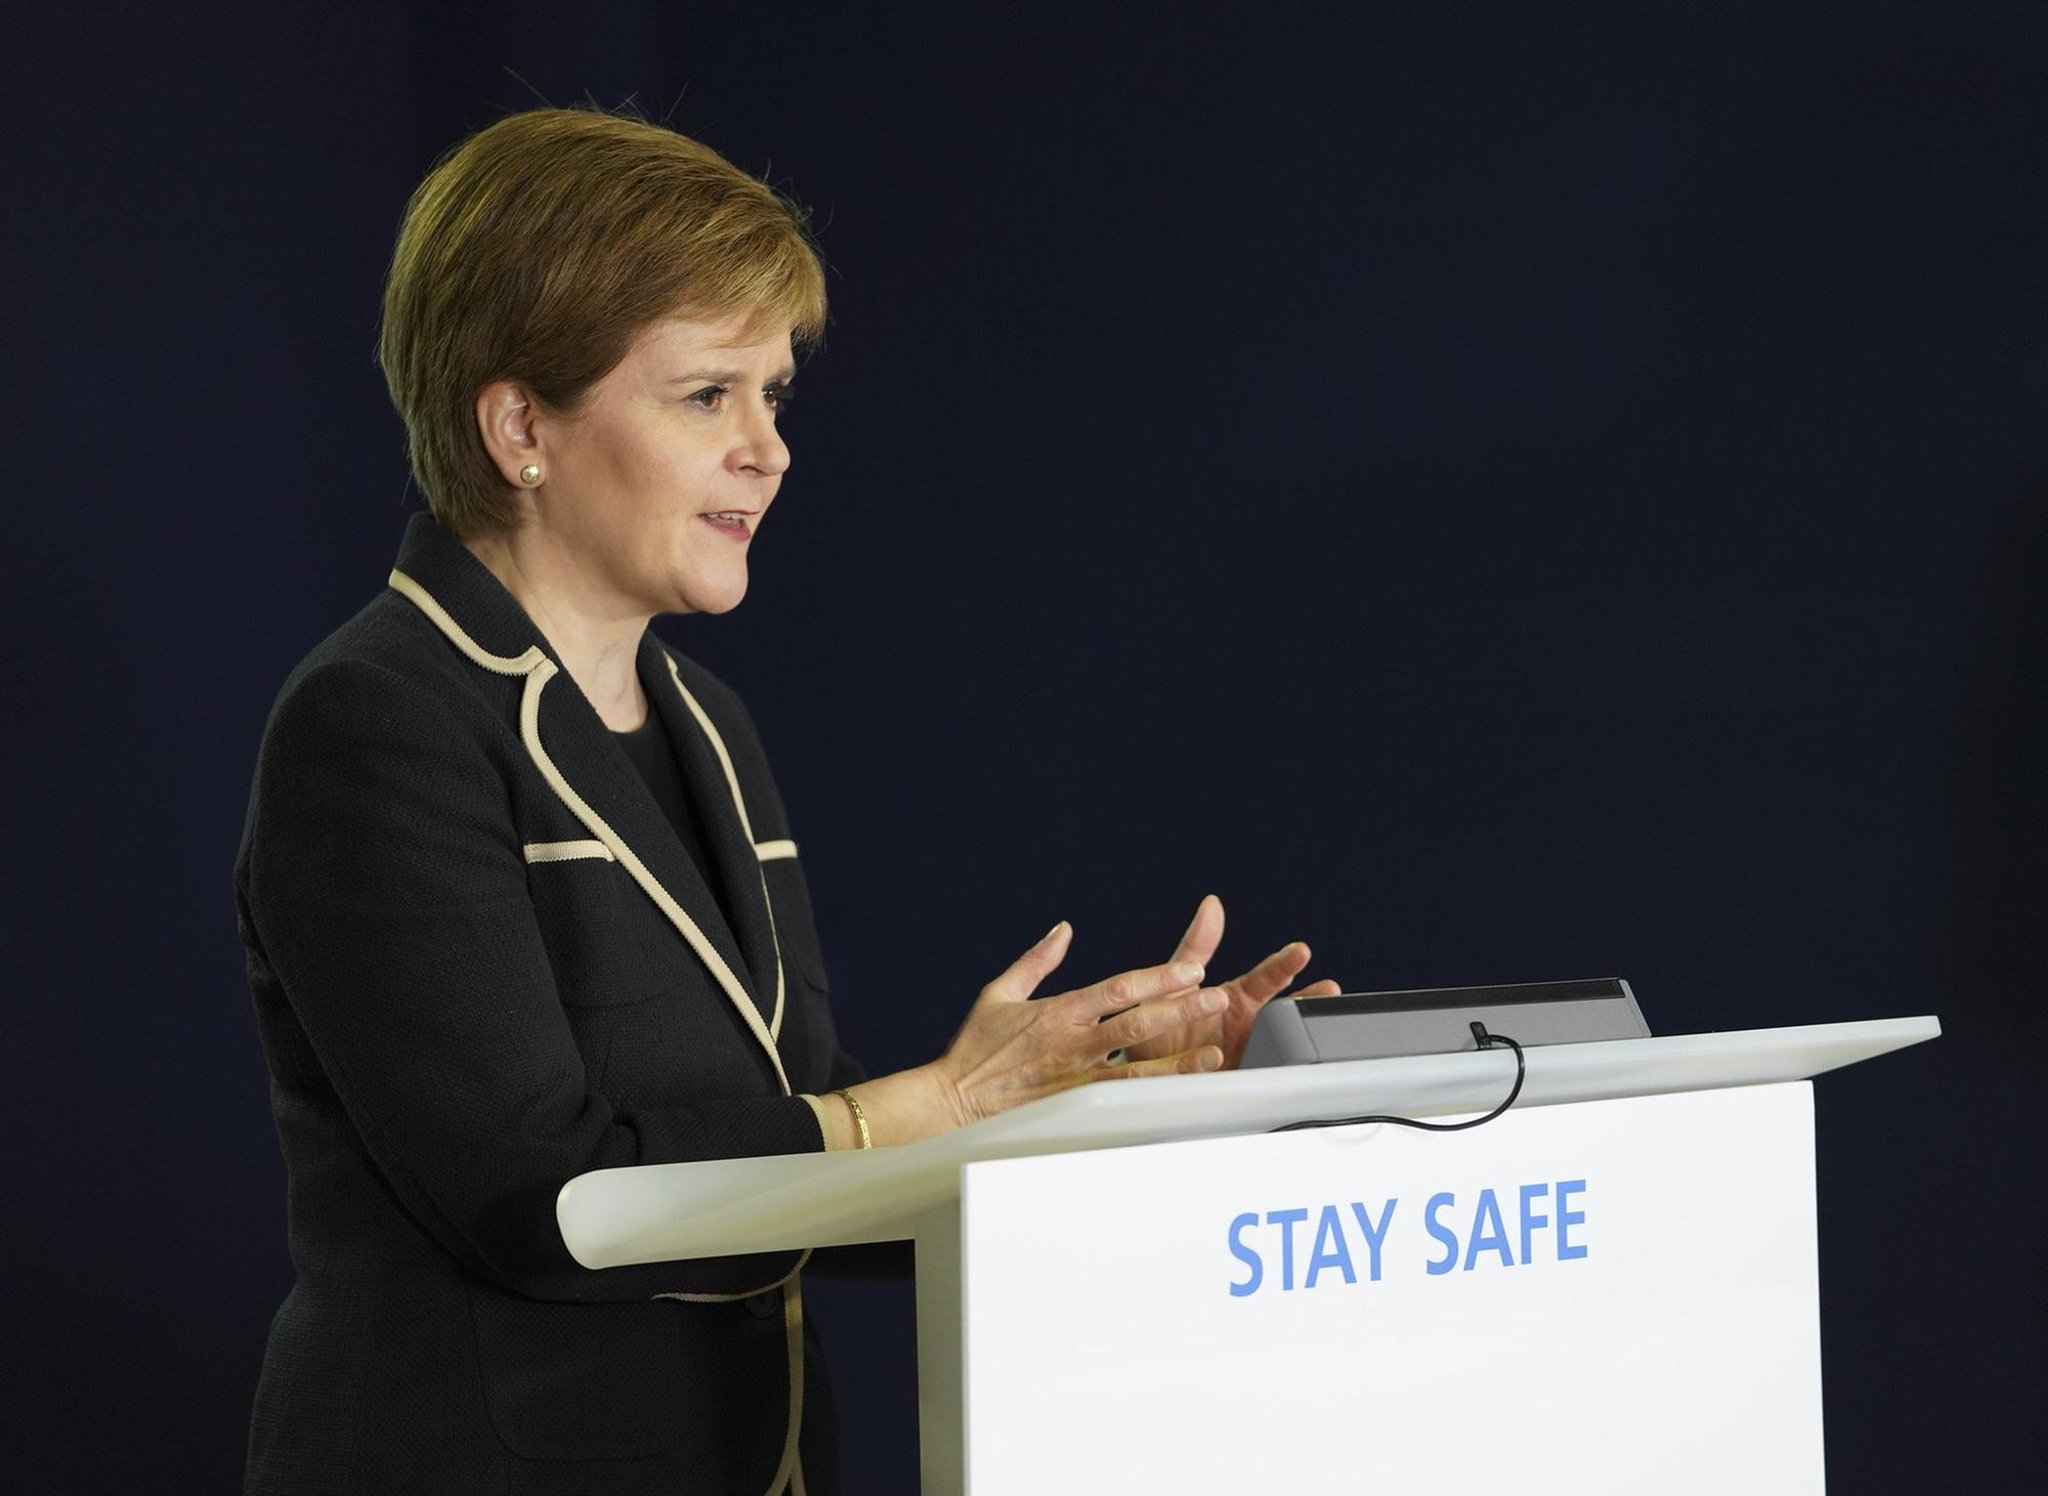 Covid Scotland: Nicola Sturgeon warns restrictions could return amid 'sharp rise' in cases